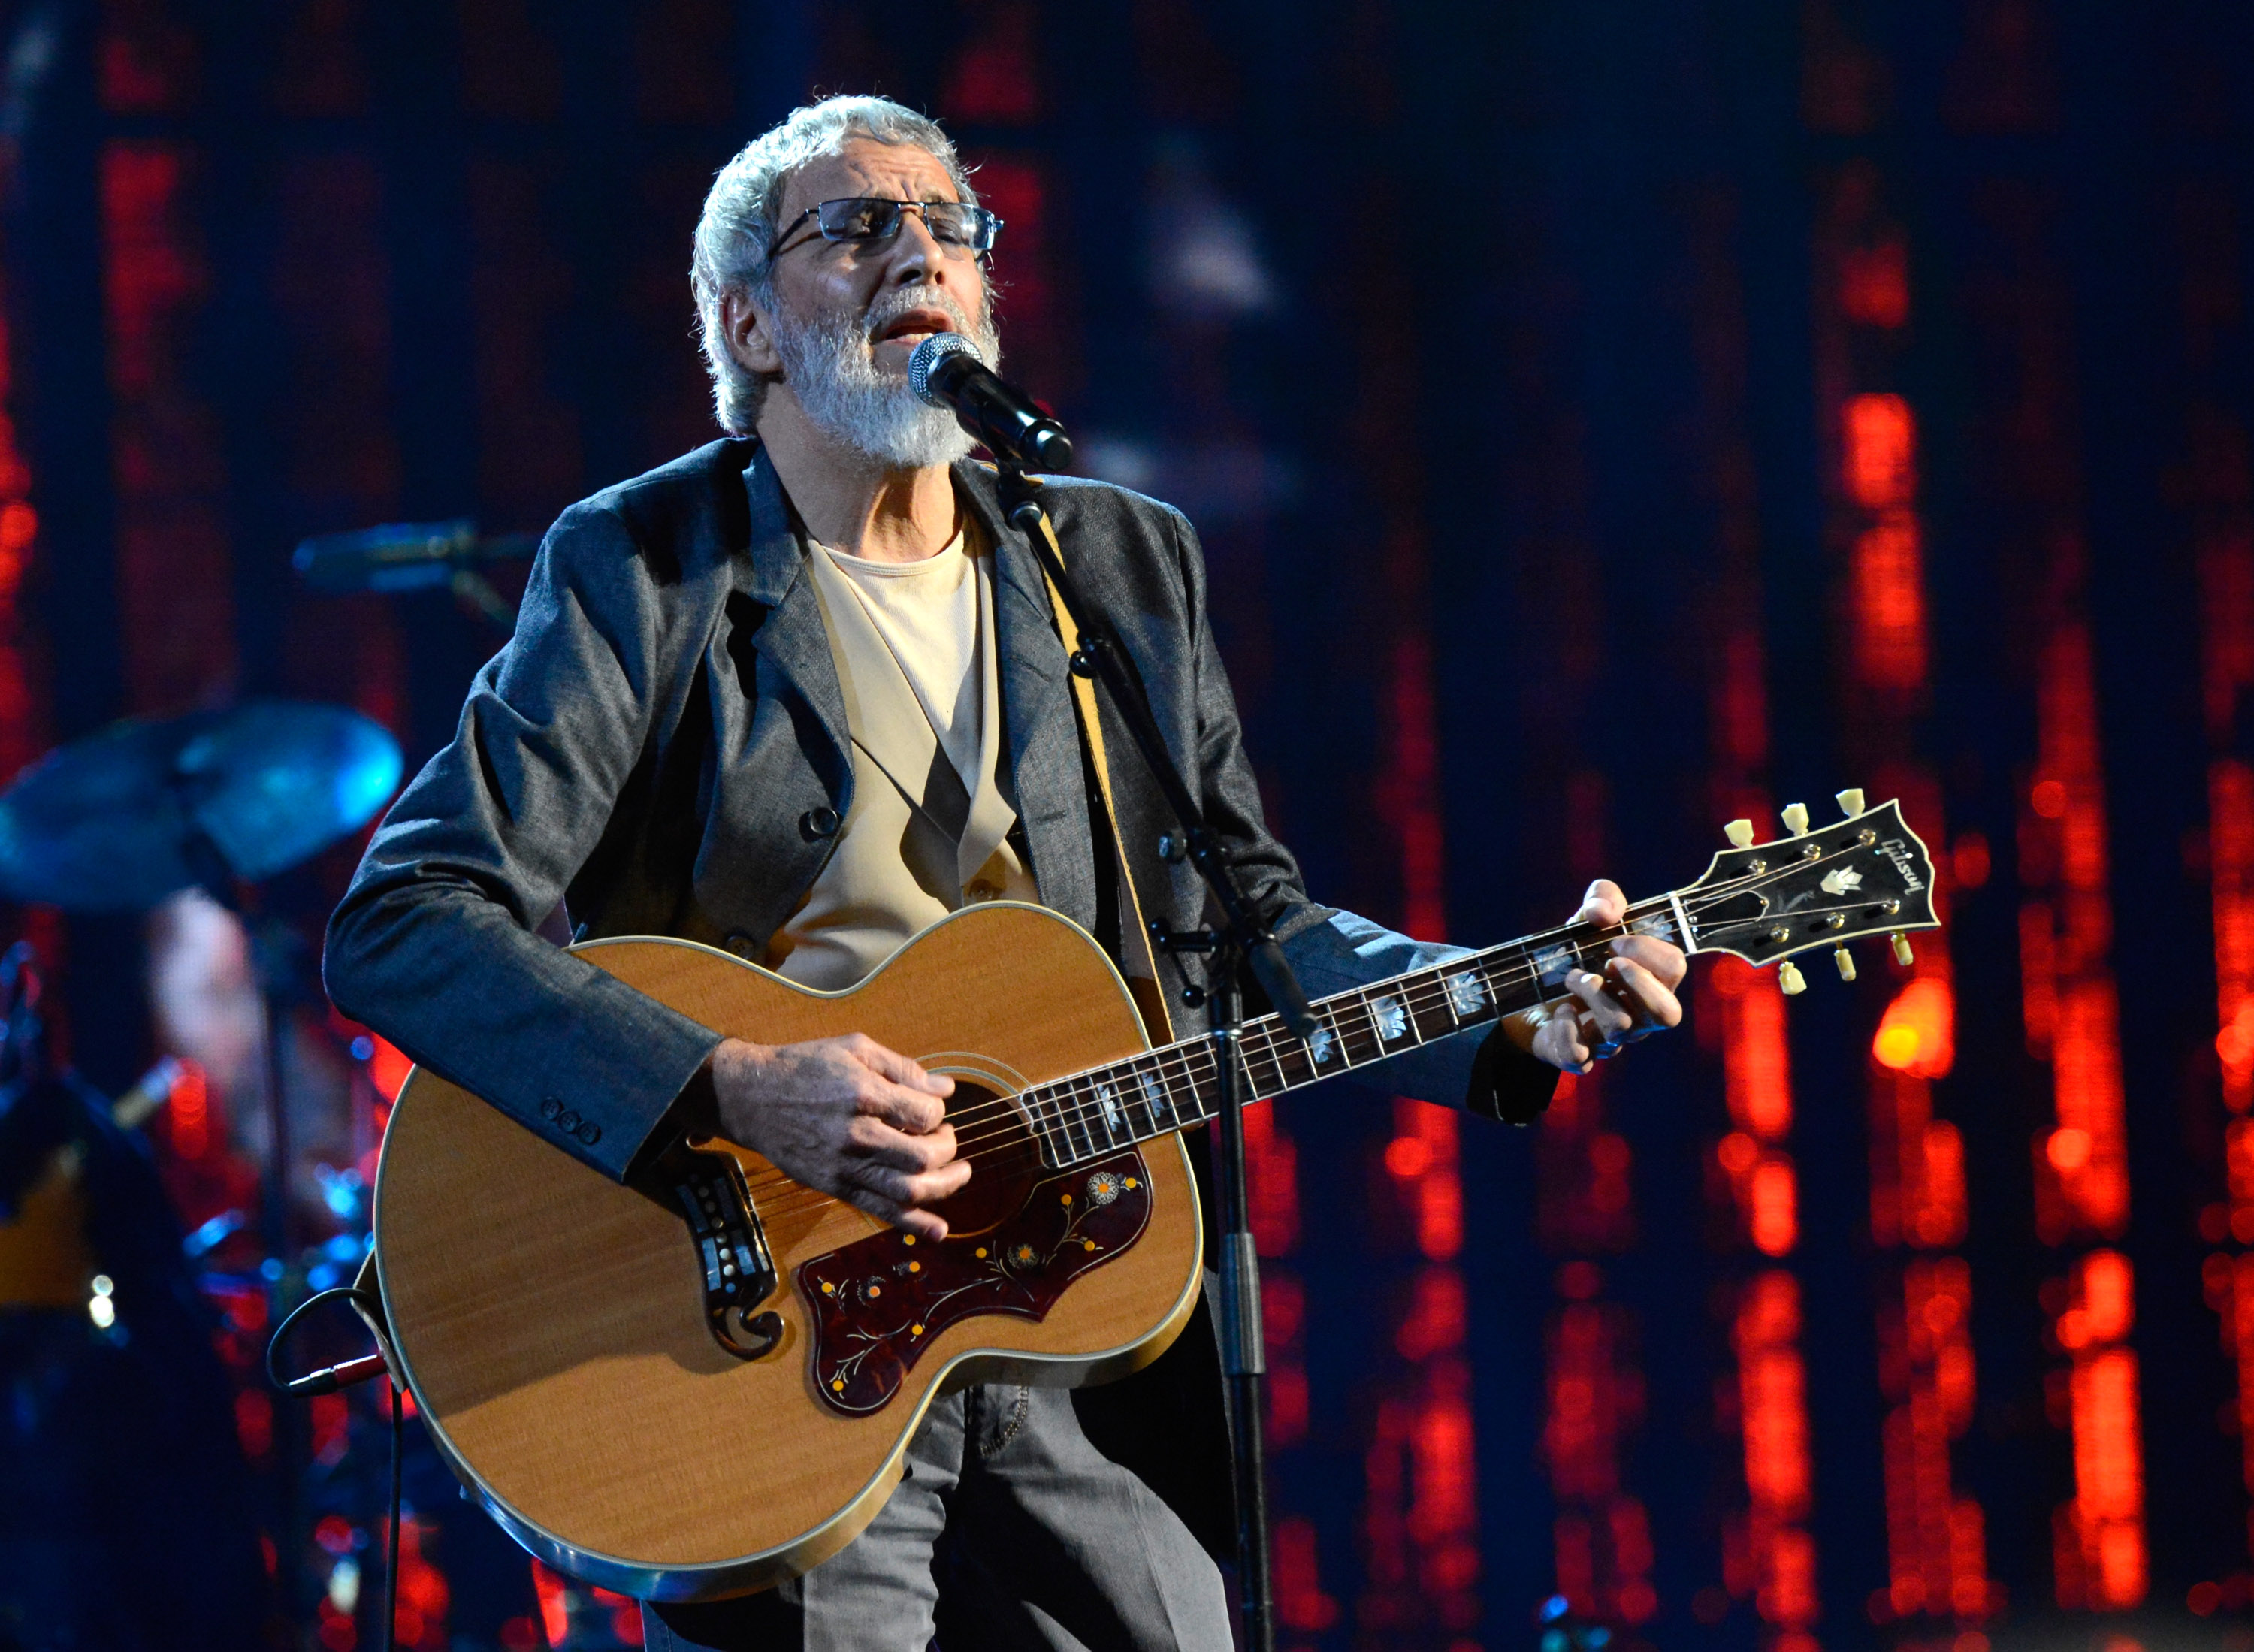 Yusuf Islam Now: Cat Stevens on Islam and His Return to